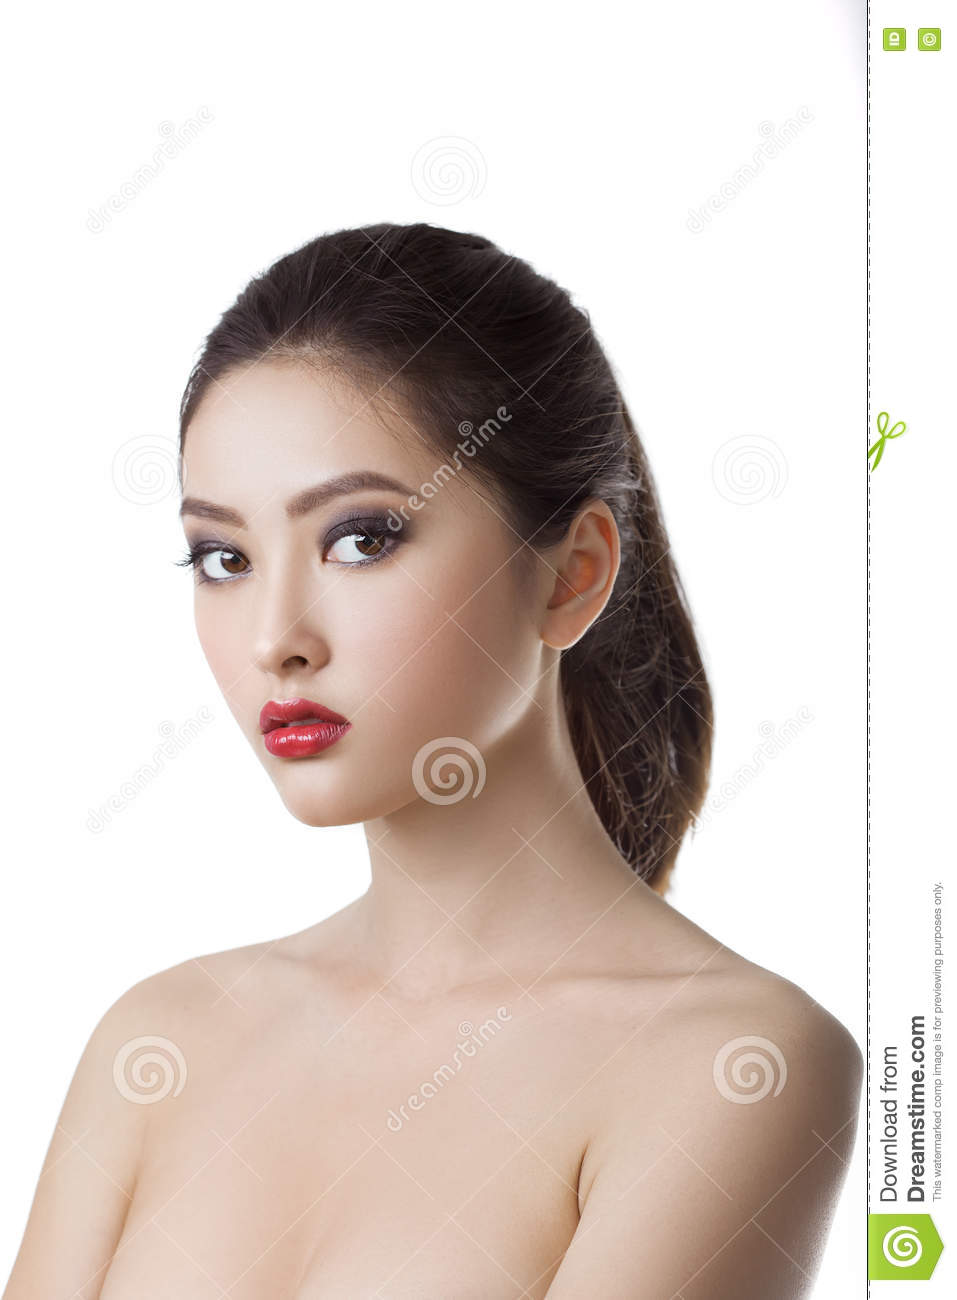 https://thumbs.dreamstime.com/z/asian-beauty-woman-skin-care-close-up-portrait-beautiful-young-girl-isolated-white-background-mixed-race-brunette-caucasian-74853151.jpg